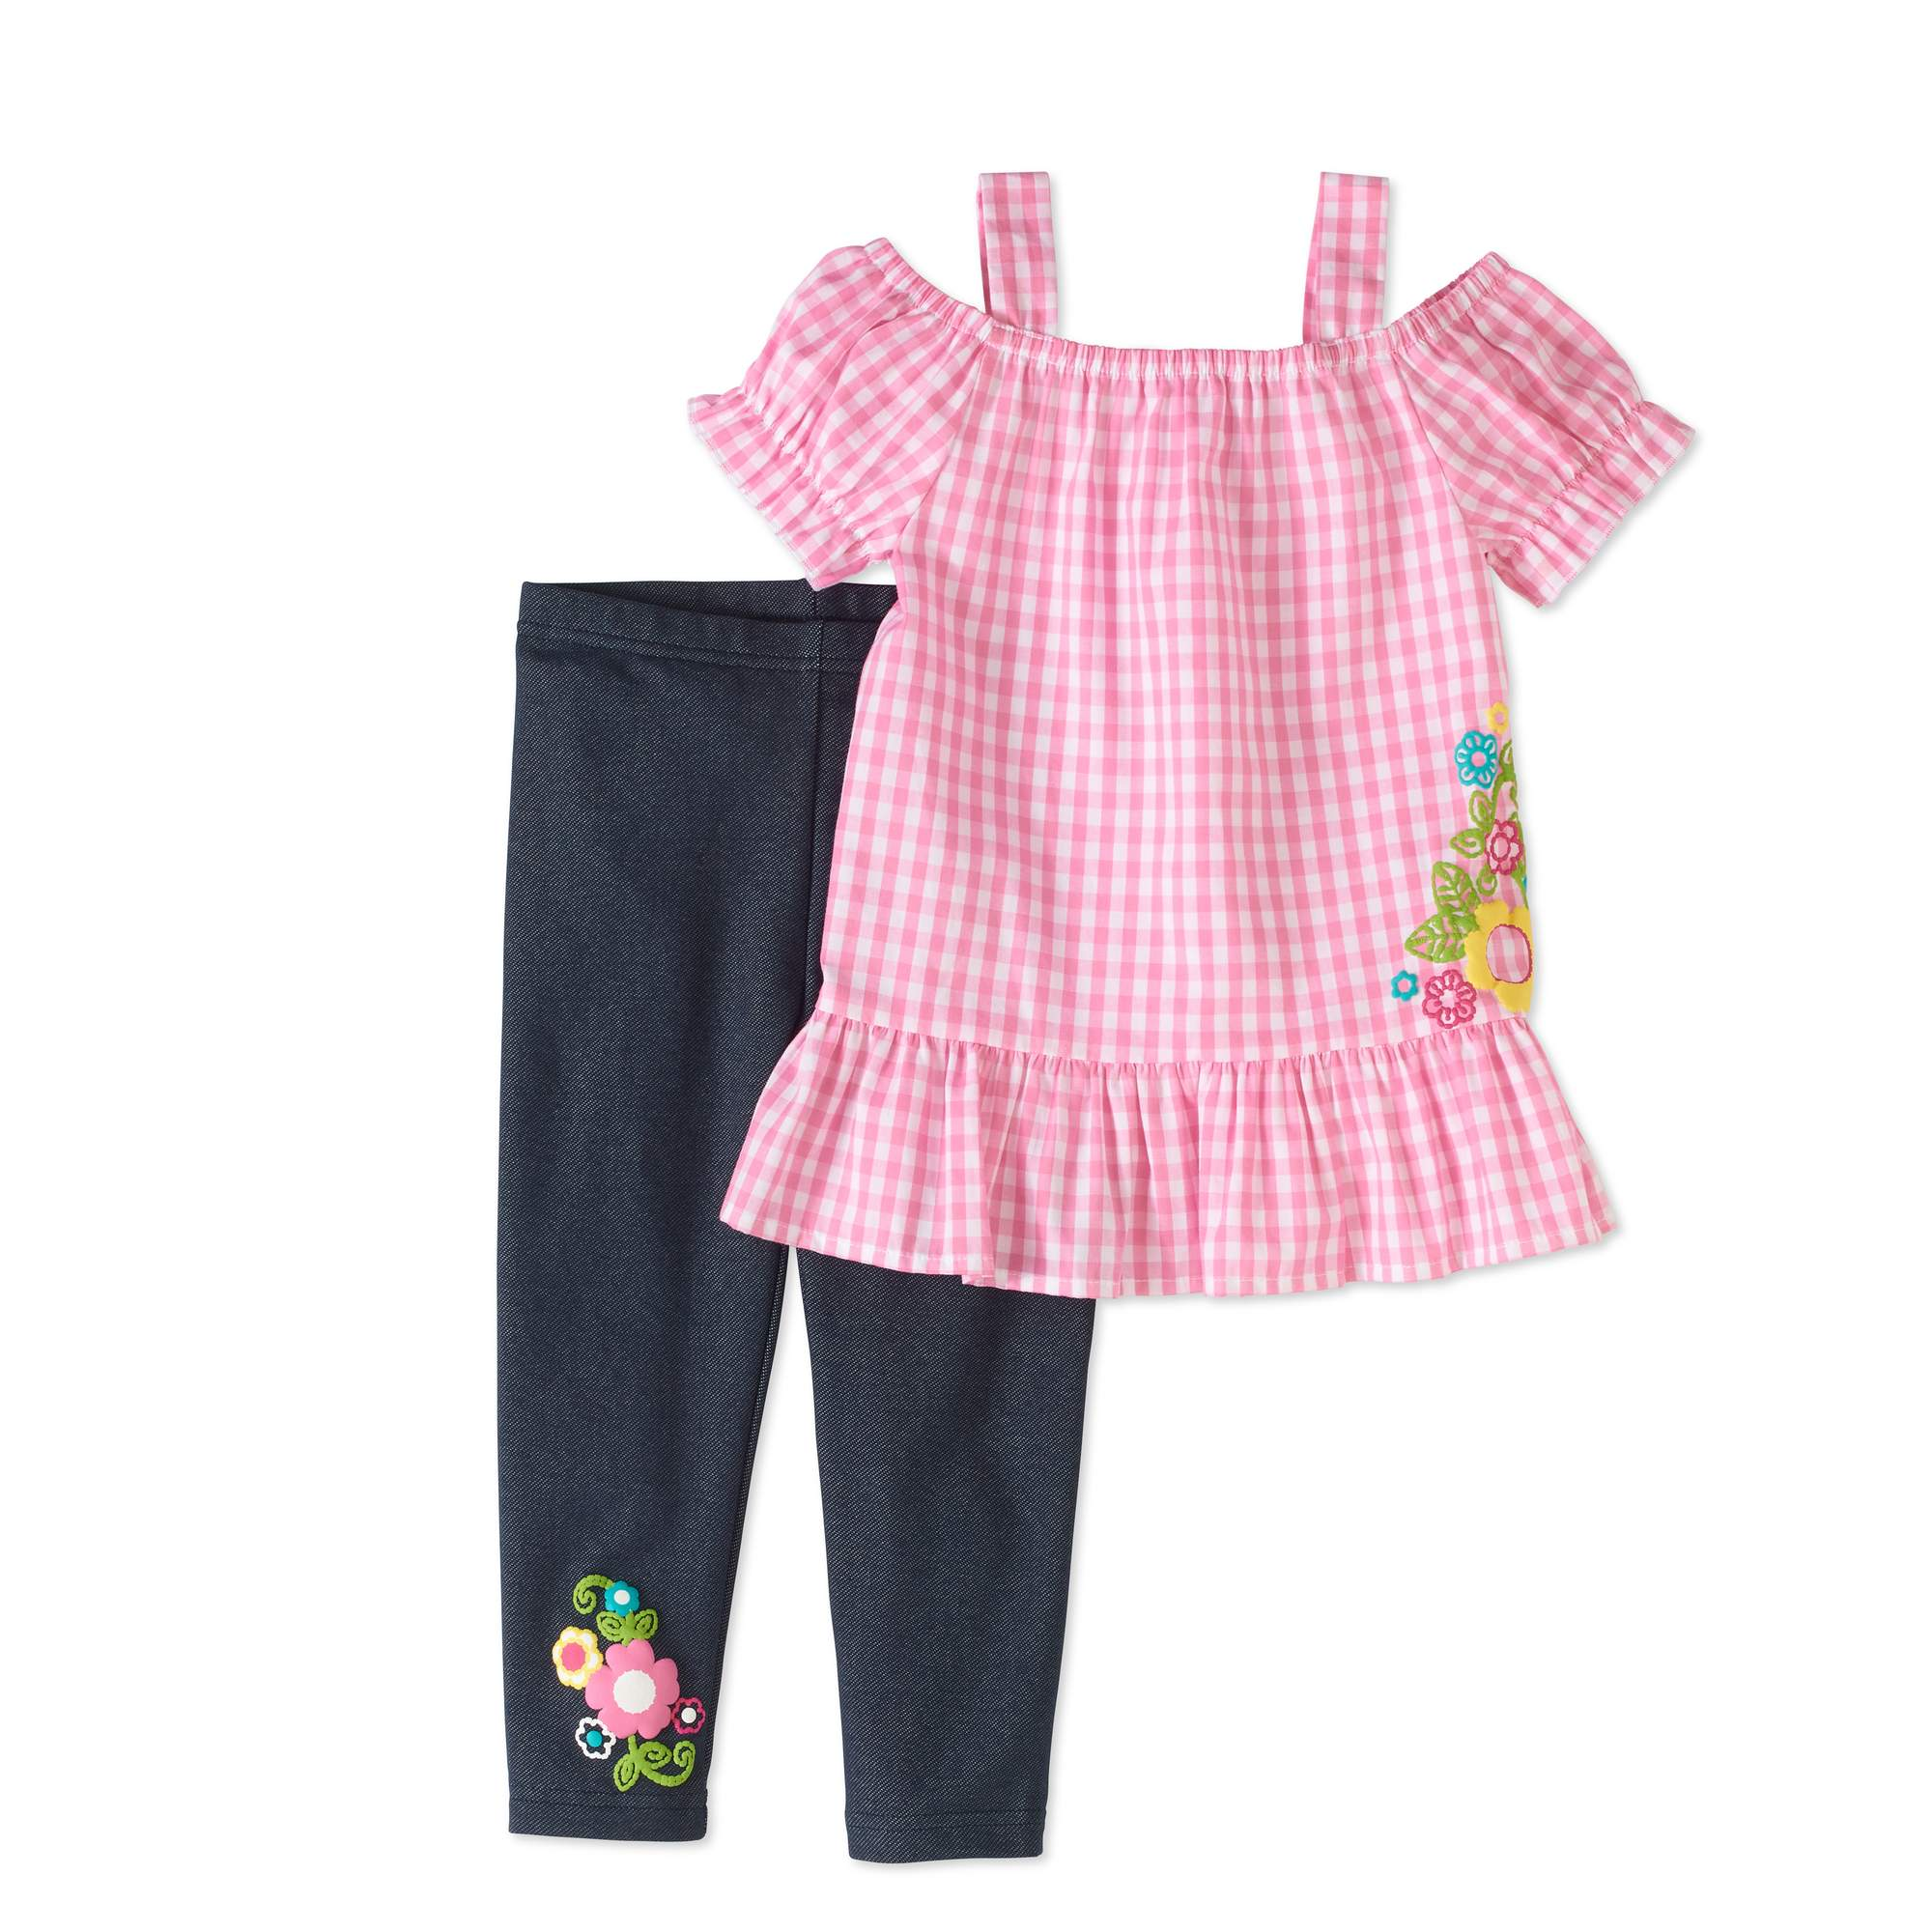 Healthtex Toddler Girls' Cold Shoulder Woven Tunic and Leggings 2-Piece Outfit Set